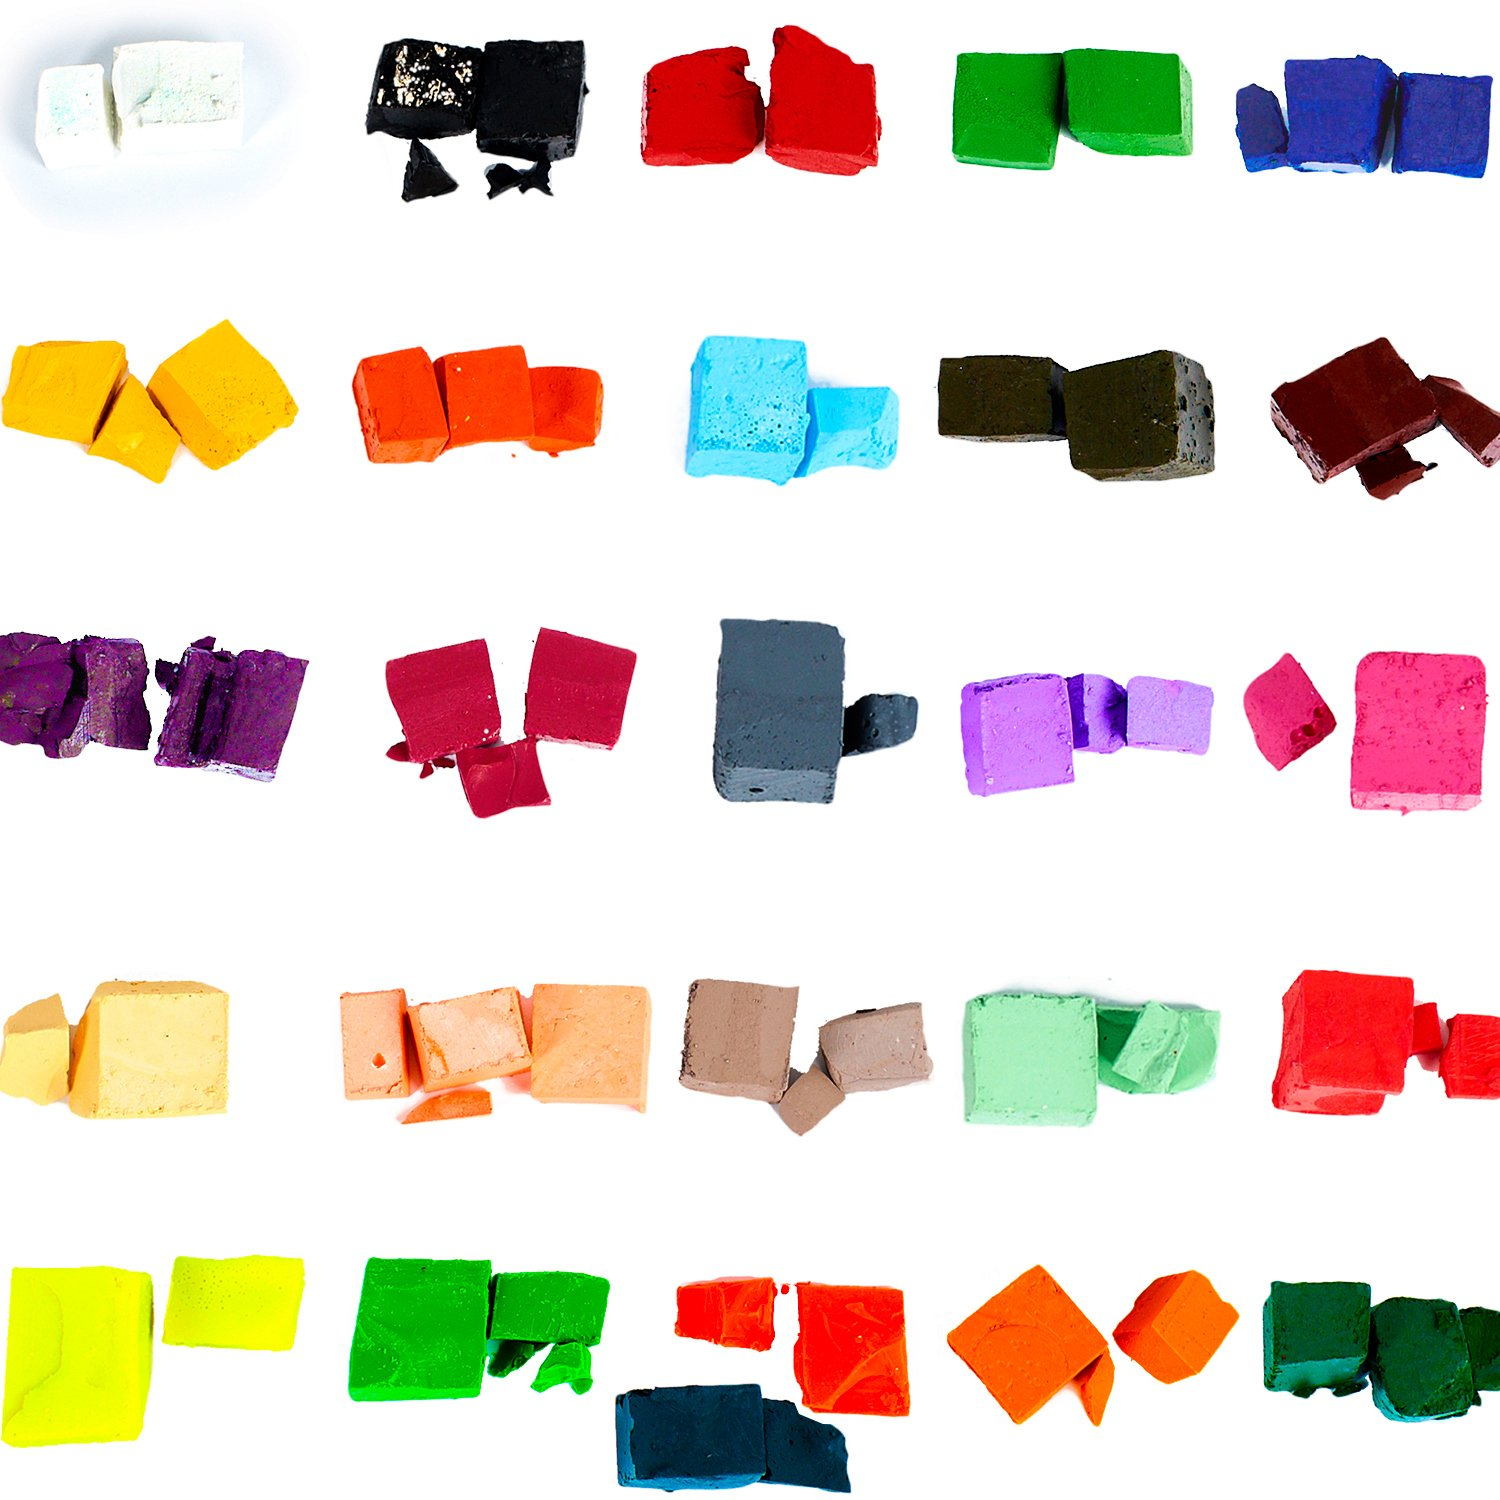 Candle Shop - 26 dye Colors for 150 lb of Wax - Candle Wax Dye - A Great Choice of Colors - Sample - Candle dye Chips for Making Candles by Candle Shop